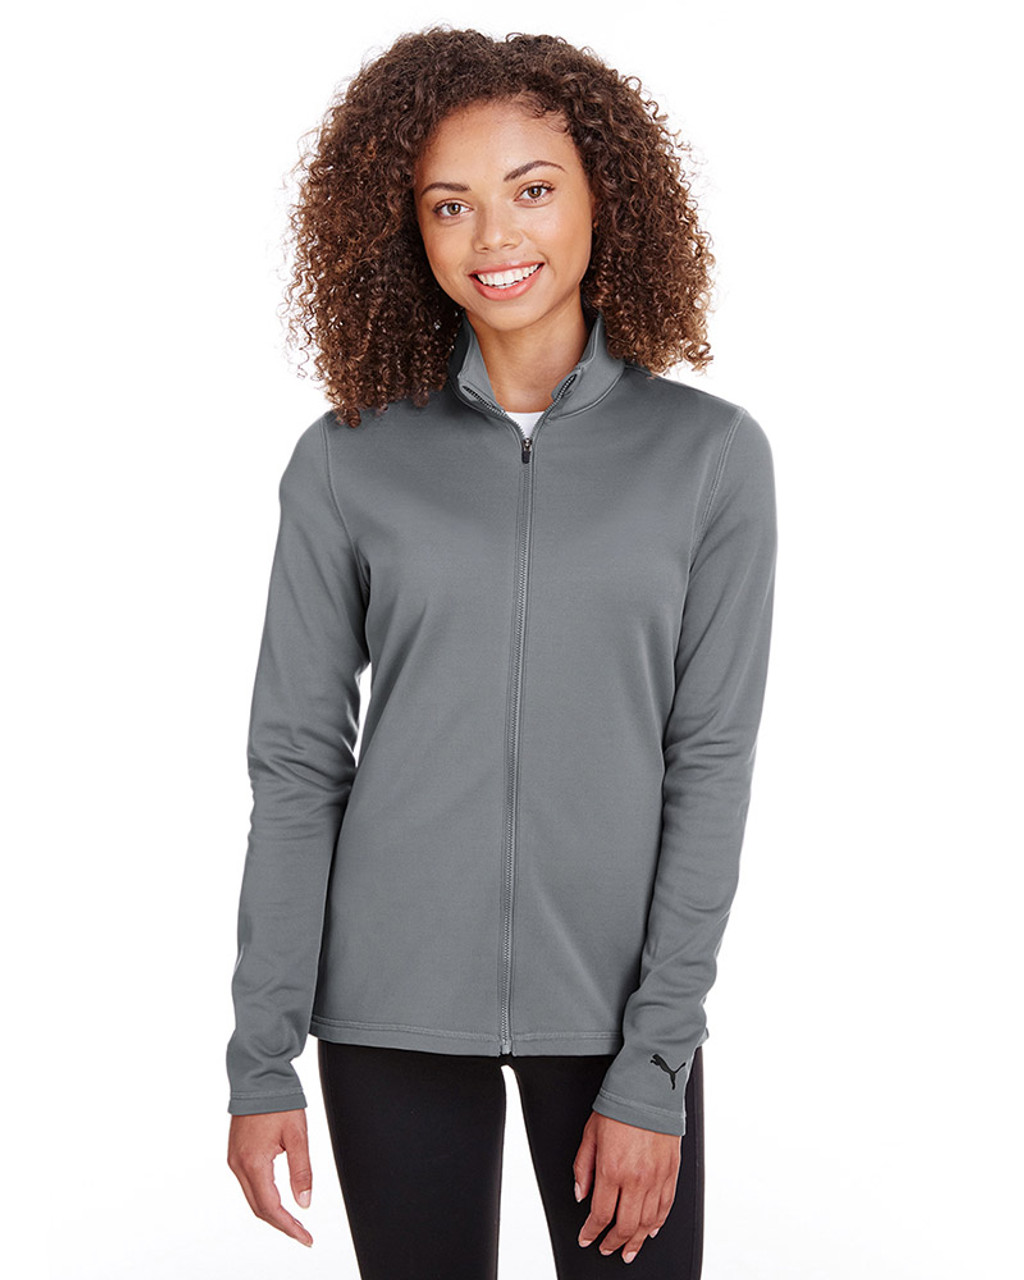 Quiet Shade - 597160 Puma Golf Ladies' Fairway Full-Zip Sweatshirt | Blankclothing.ca